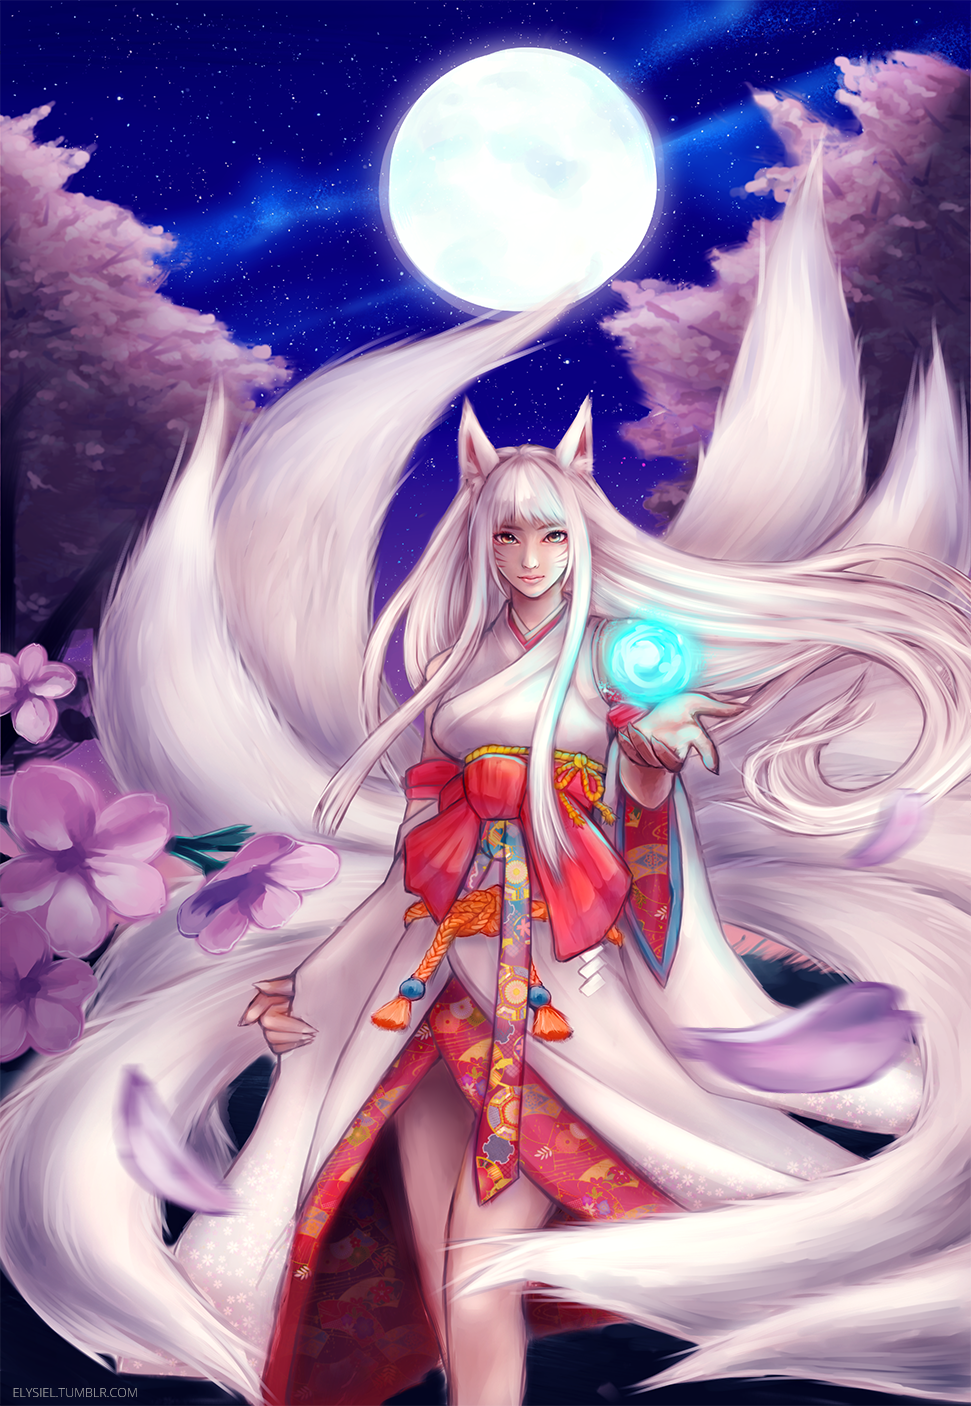 Kitsune Ahri by nyaruko on DeviantArt